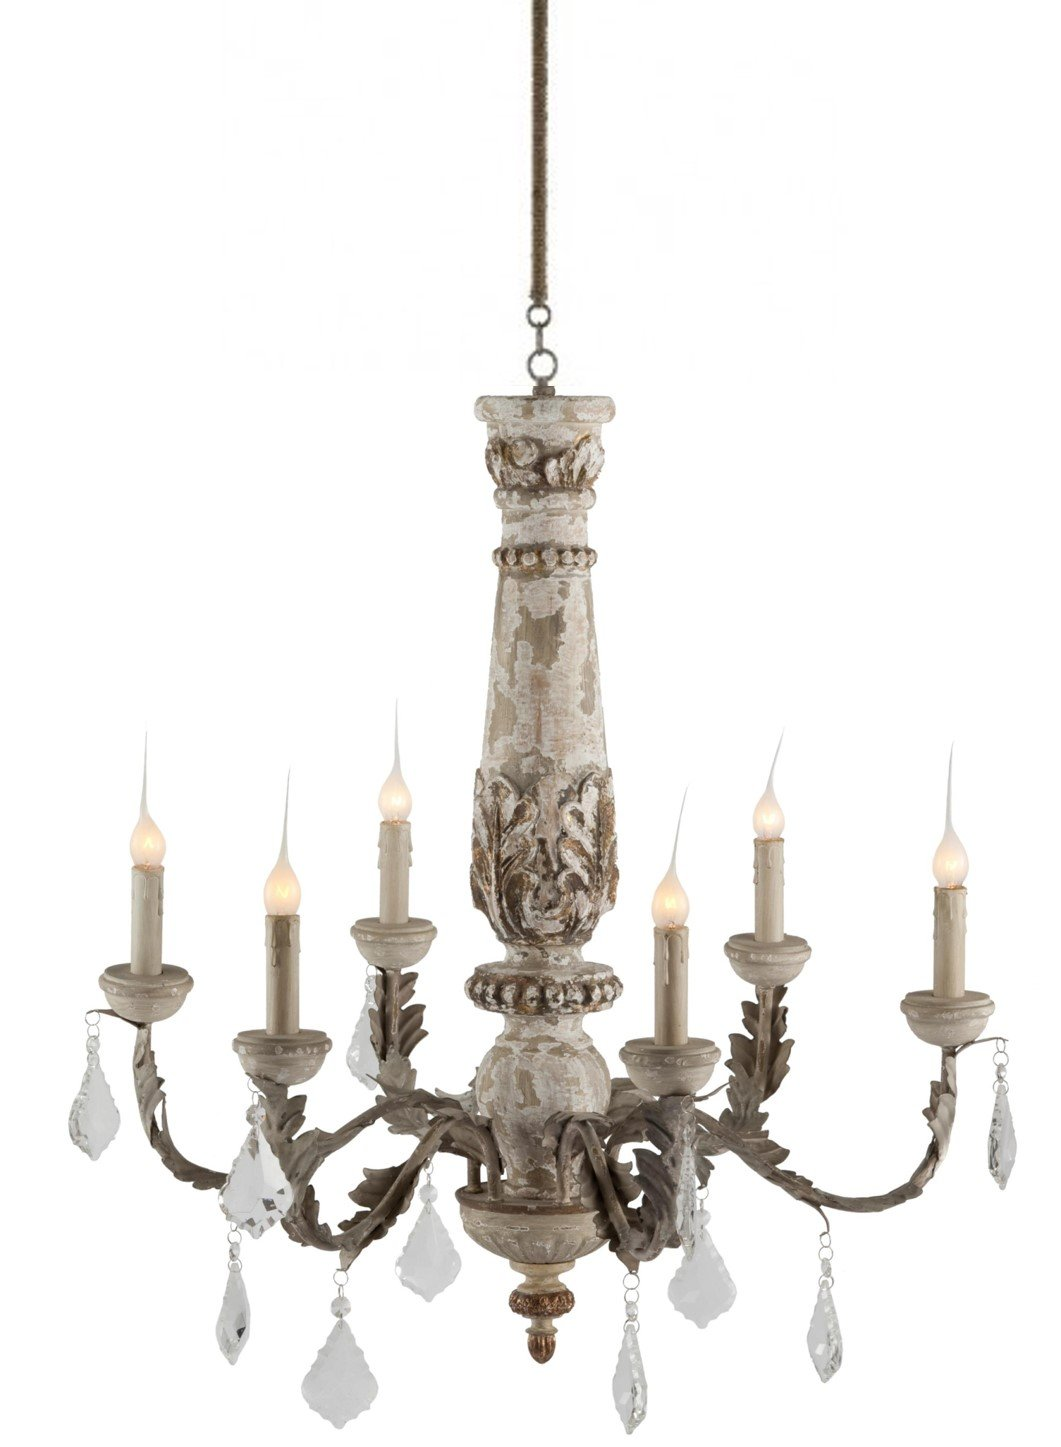 BAUDIN FRENCH COUNTRY RUSTIC CRYSTAL GRAY 6 LIGHT CHANDELIER